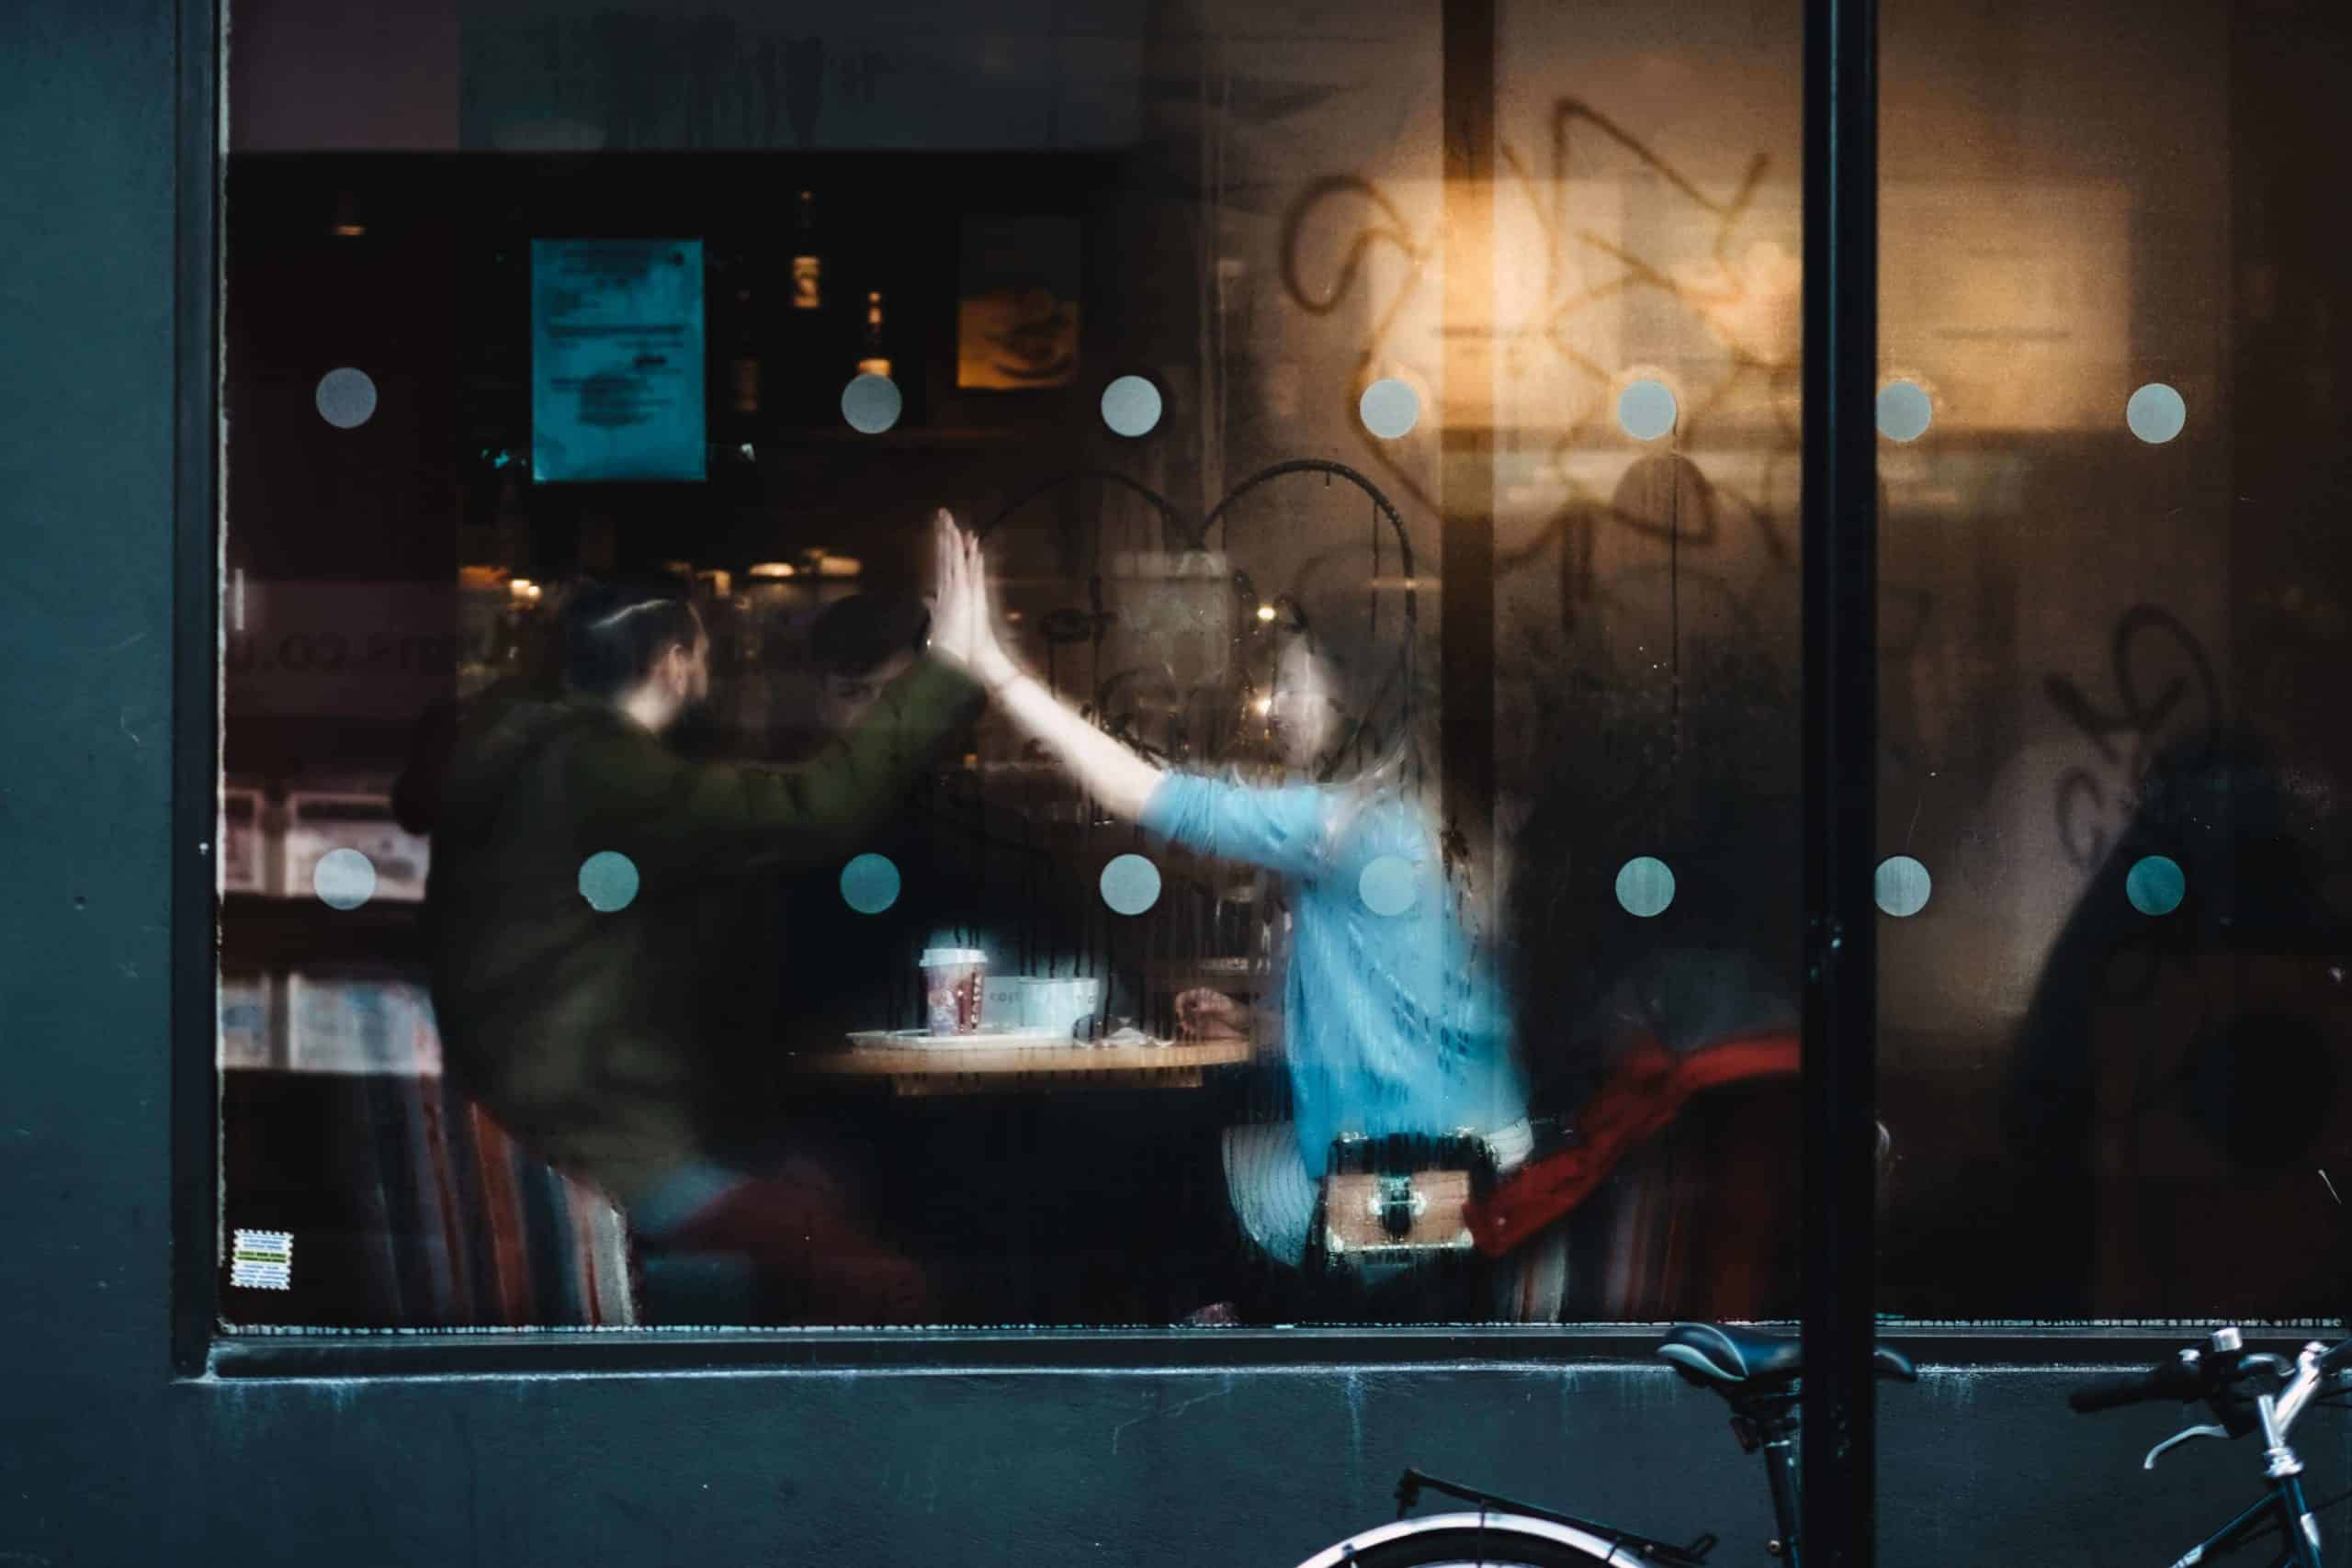 Go from unknown to personal relationships with your customers